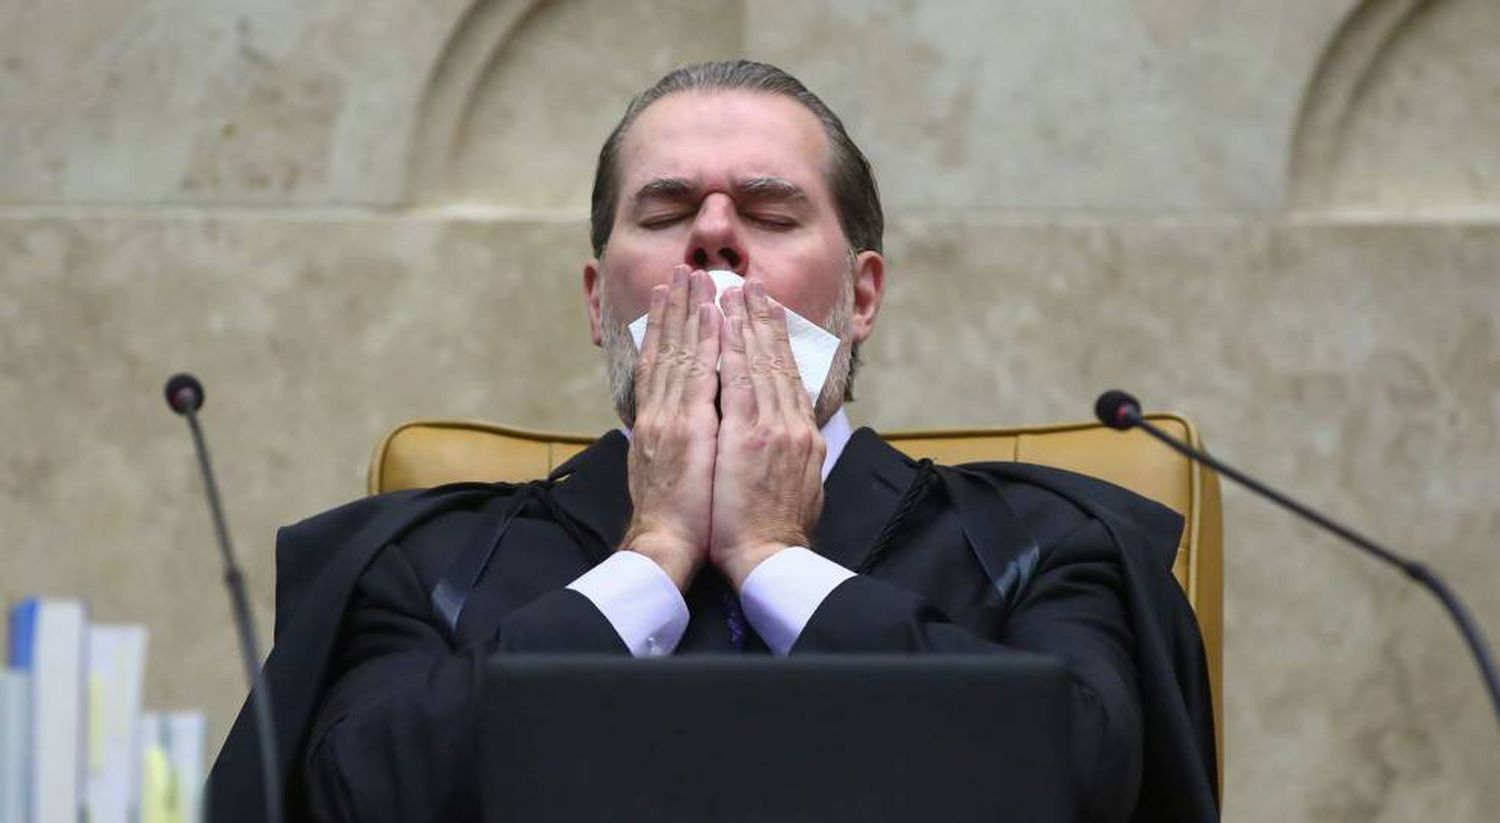 O presidente do STF, Antonio Dias Toffoli.